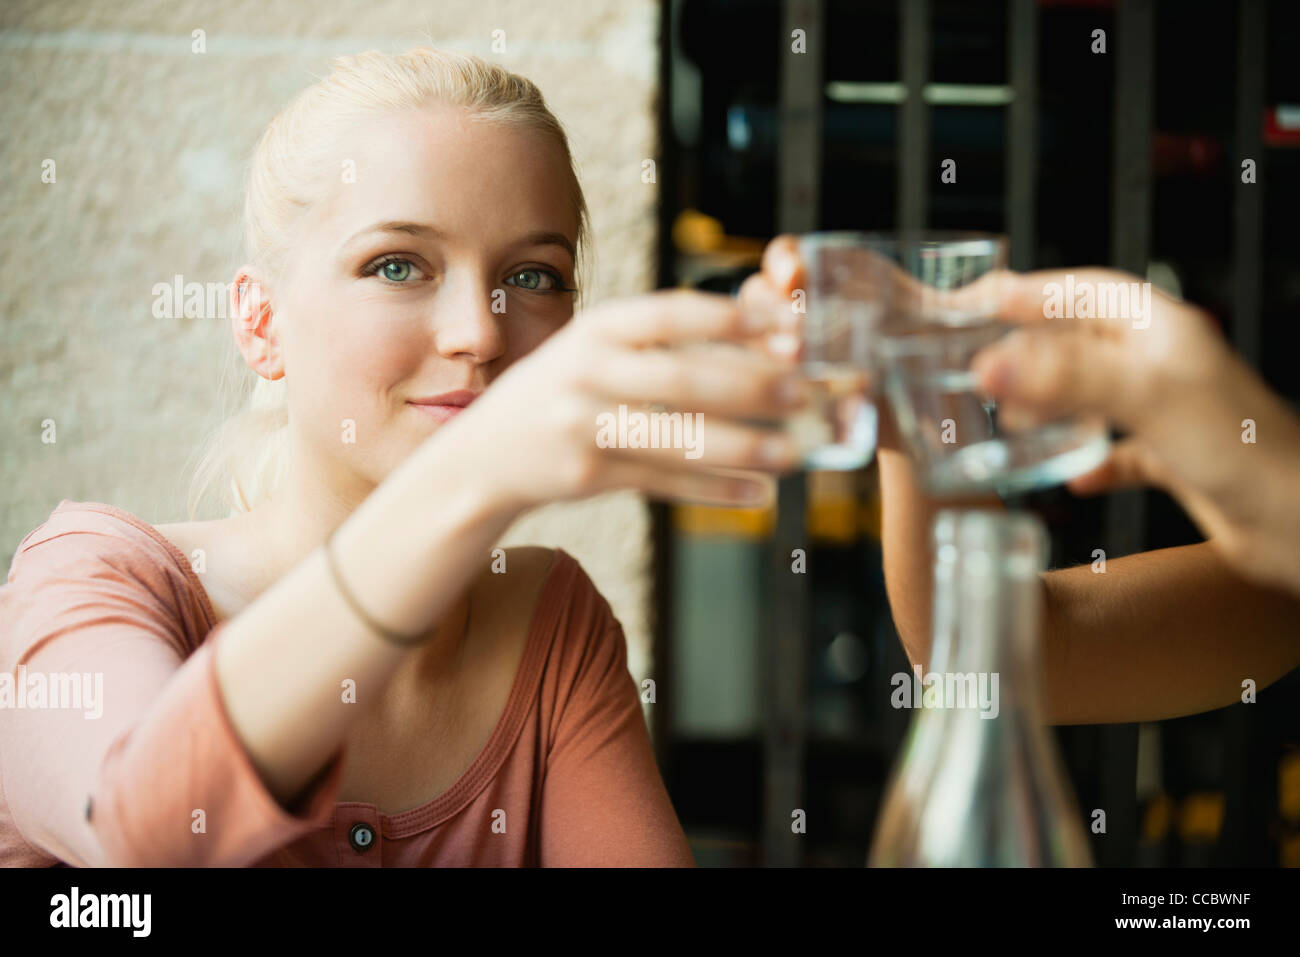 Young blond woman raising glass - Stock Image